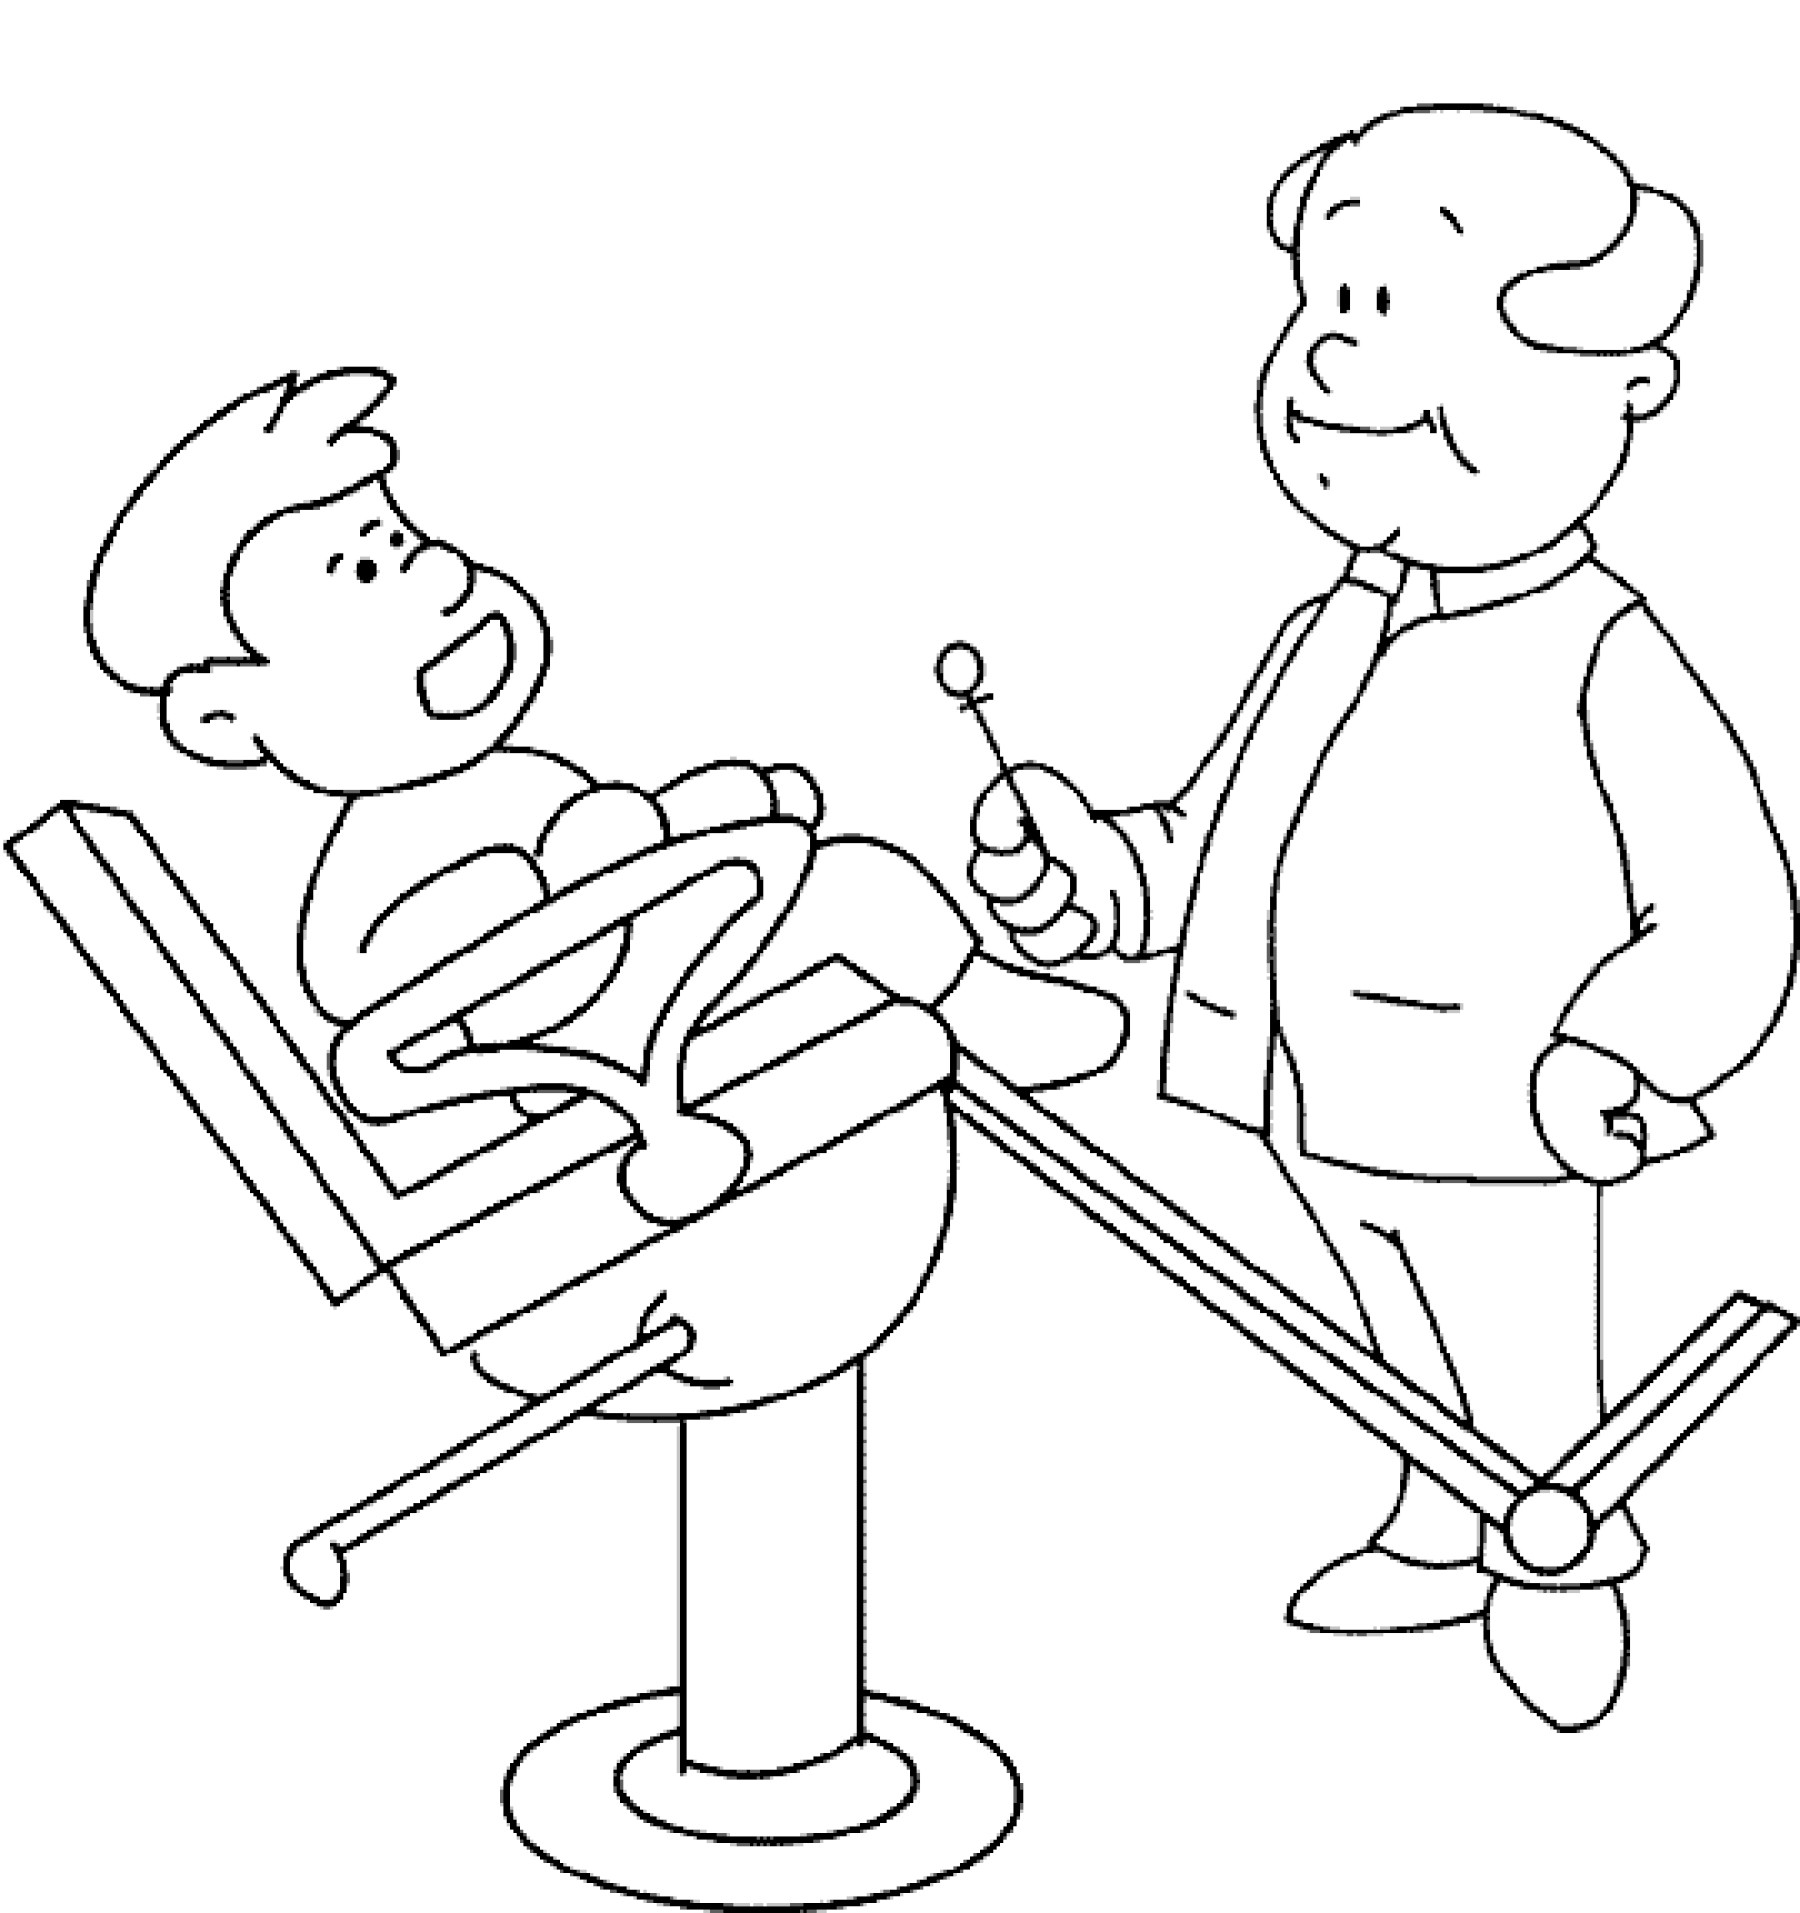 1800x1913 Tools Coloring Pages New Dental Health Coloring Pages Personal